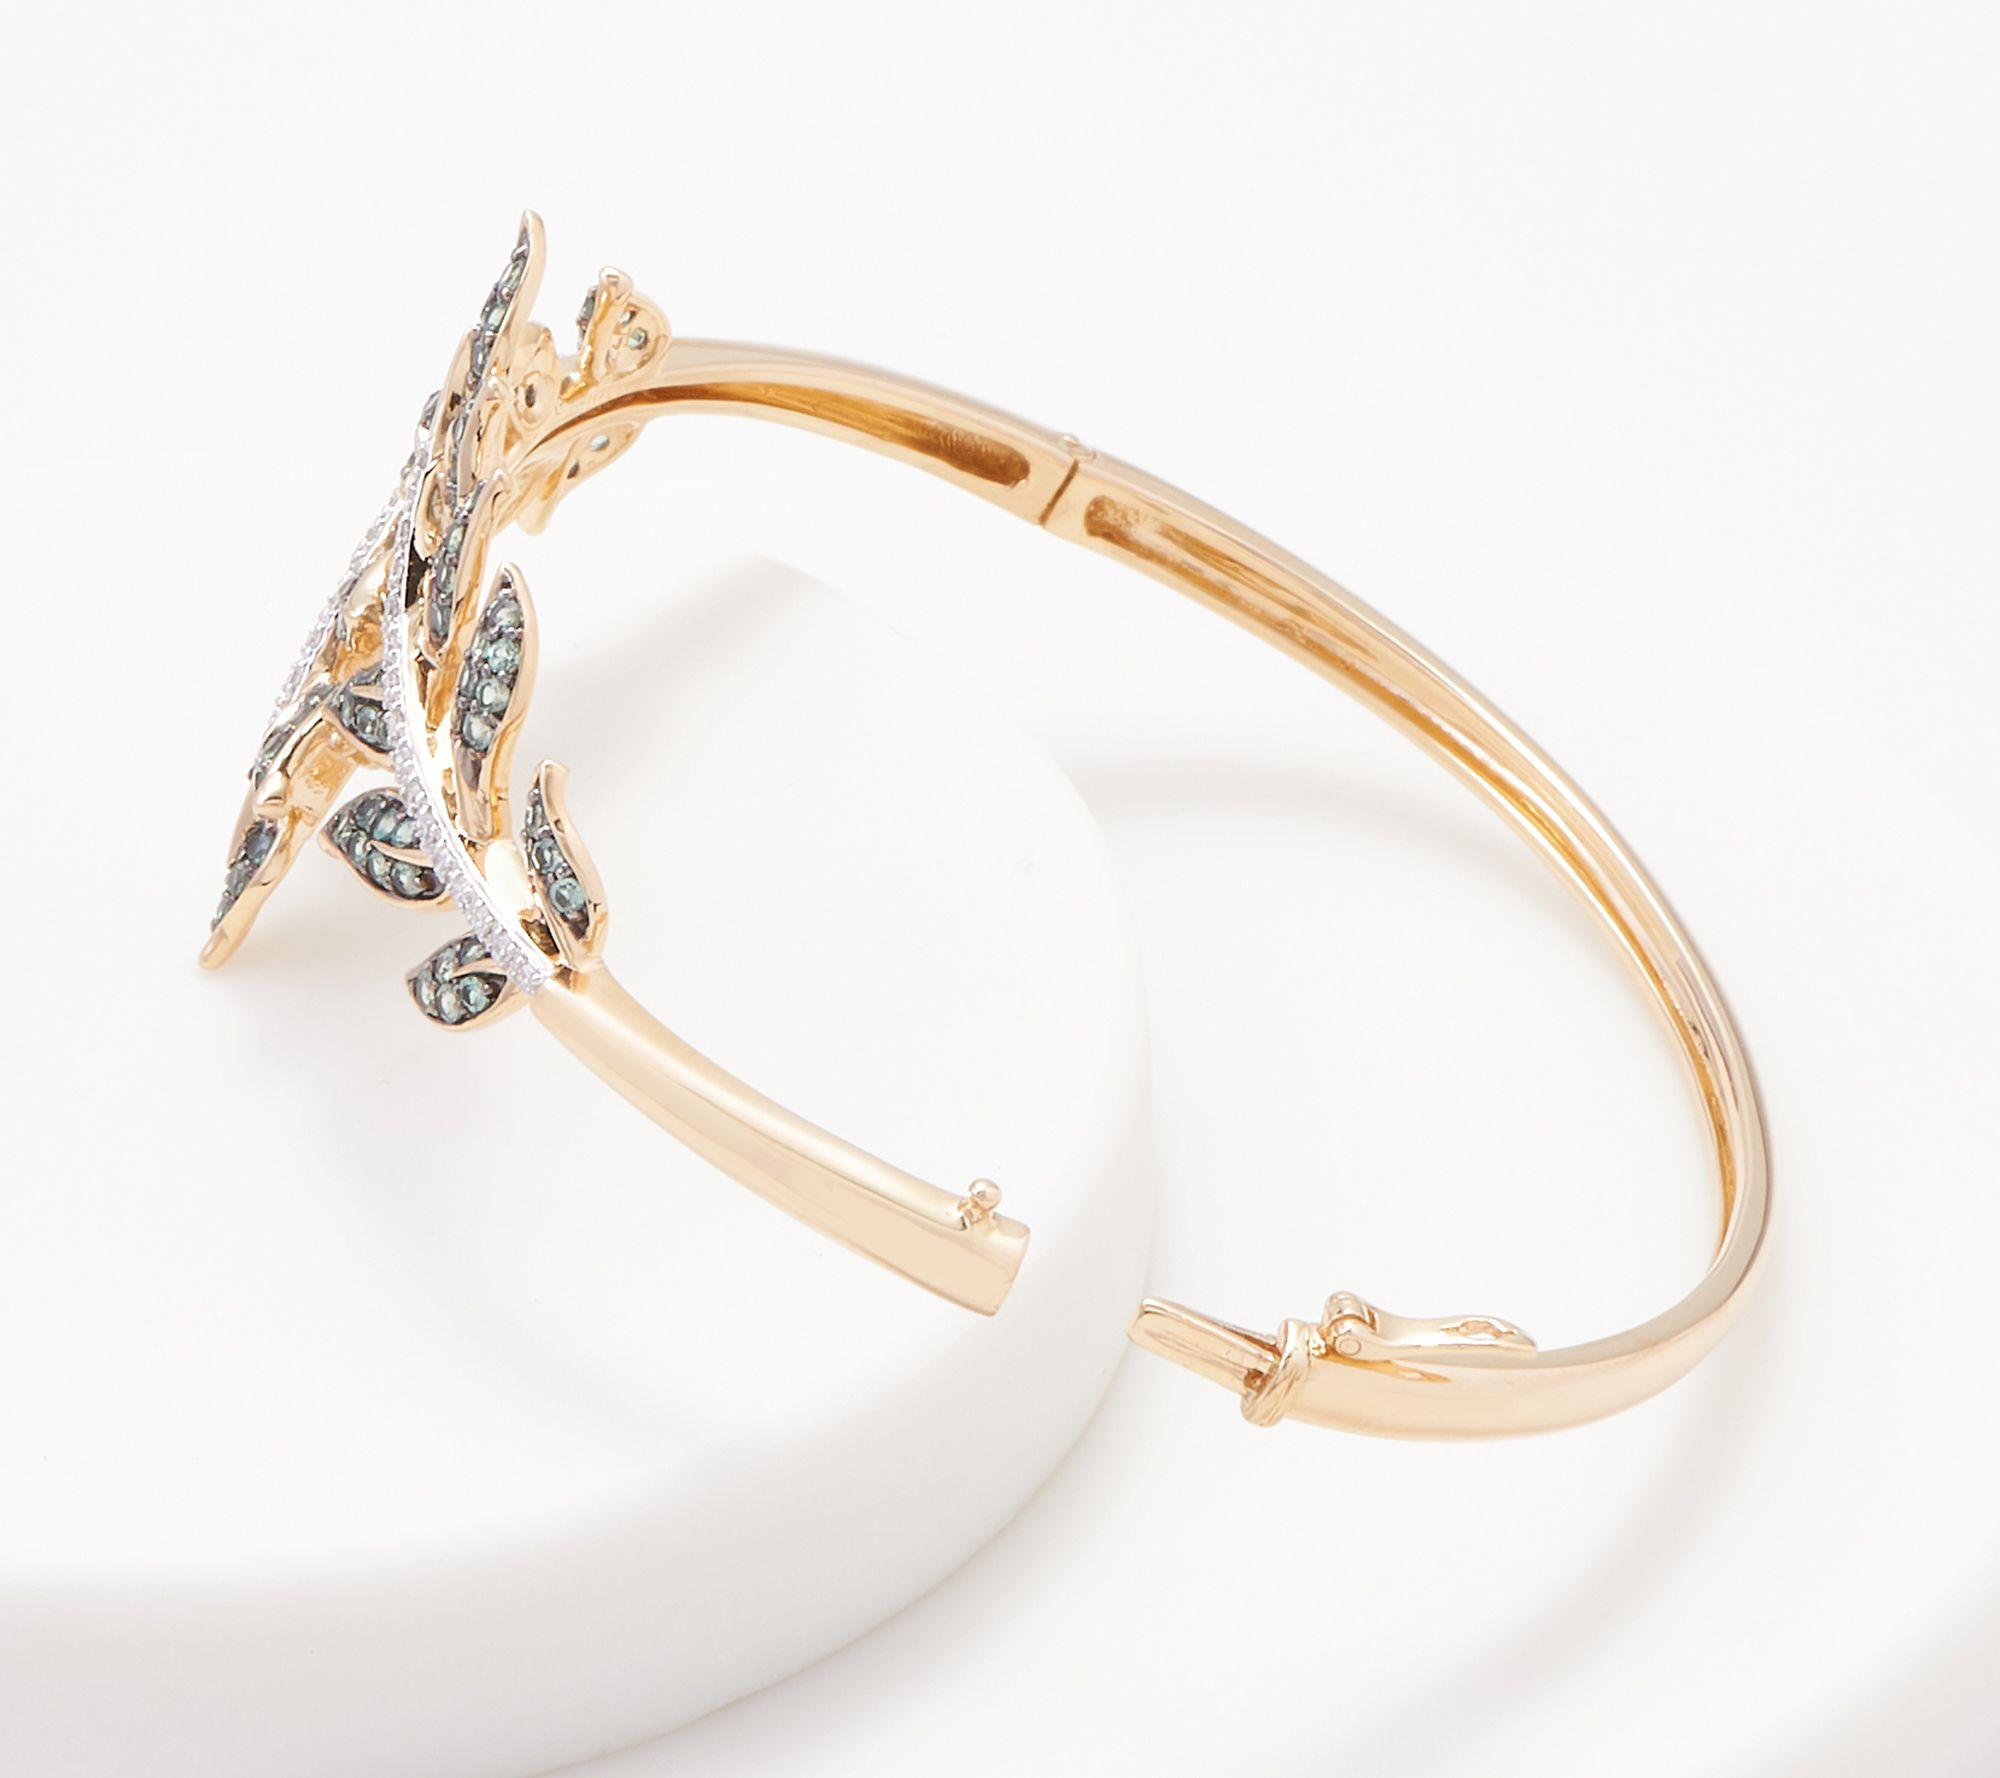 9.2 Stainless Steel Gold Color Plated Engraved Star Cross Round Bangle D Length